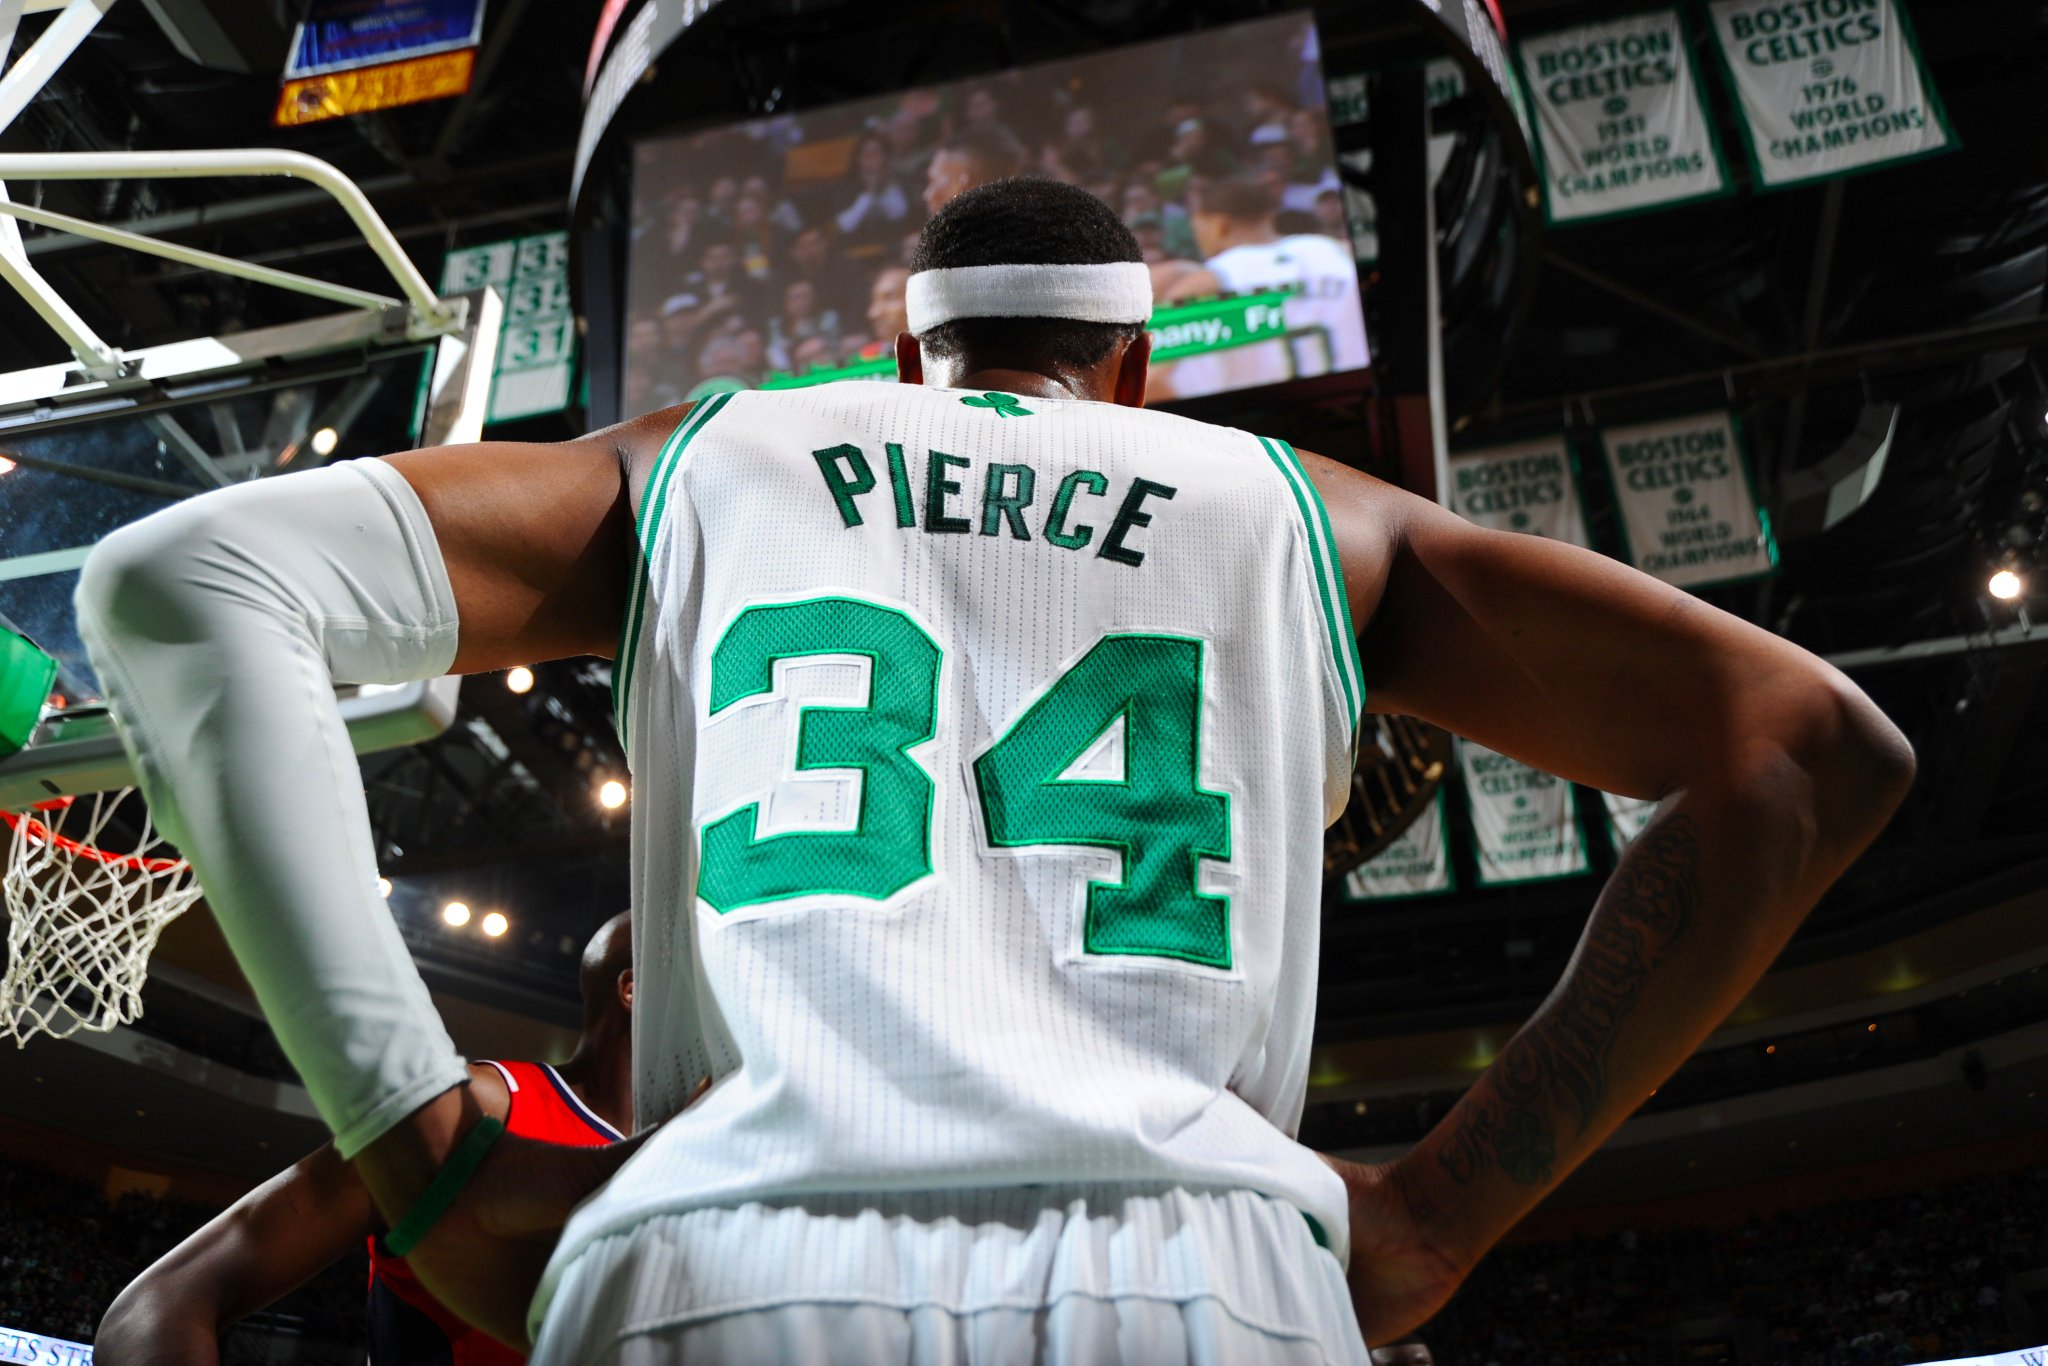 #️⃣3️⃣4️⃣ is headed to the rafters.   The @celtics will retire Paul Pierce's No. 34 on February 11th vs. Cavs. https://t.co/OTqdnGB85V